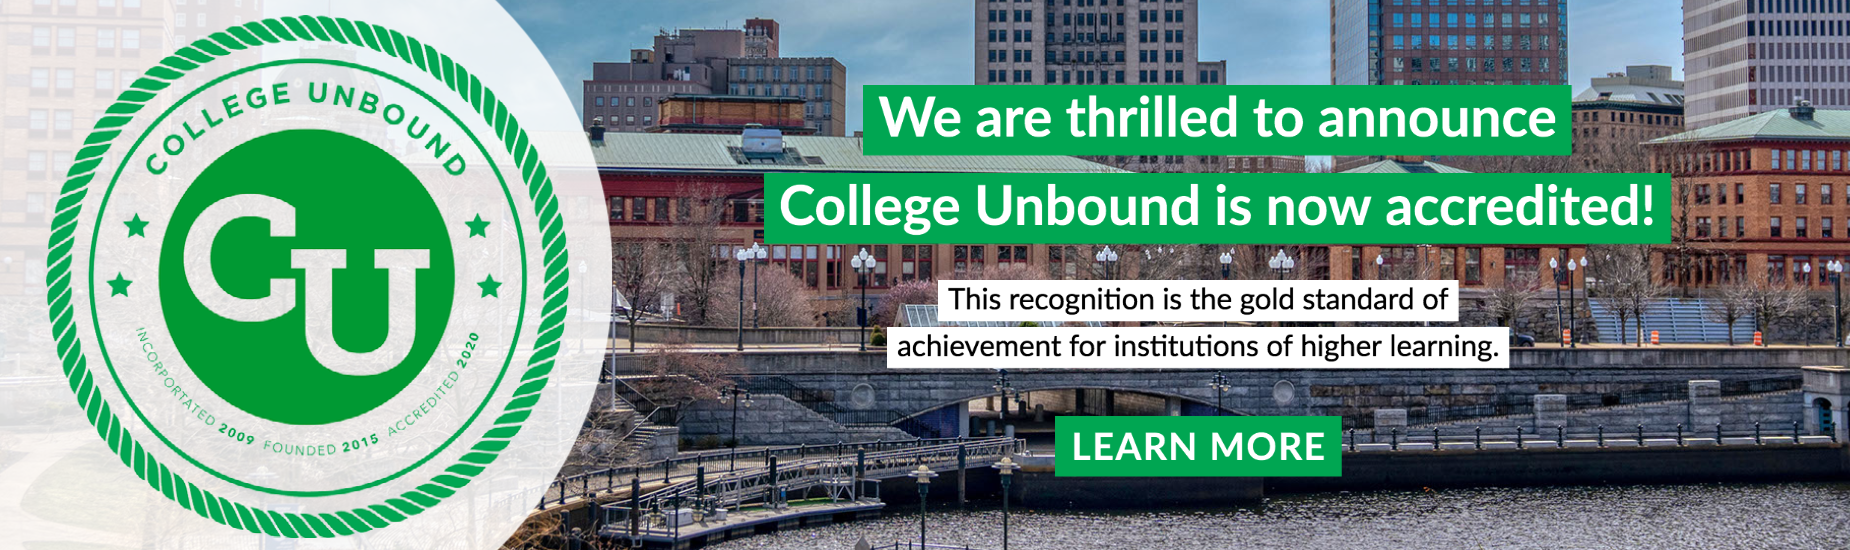 We are thrilled to announce College Unbound is now accredited!